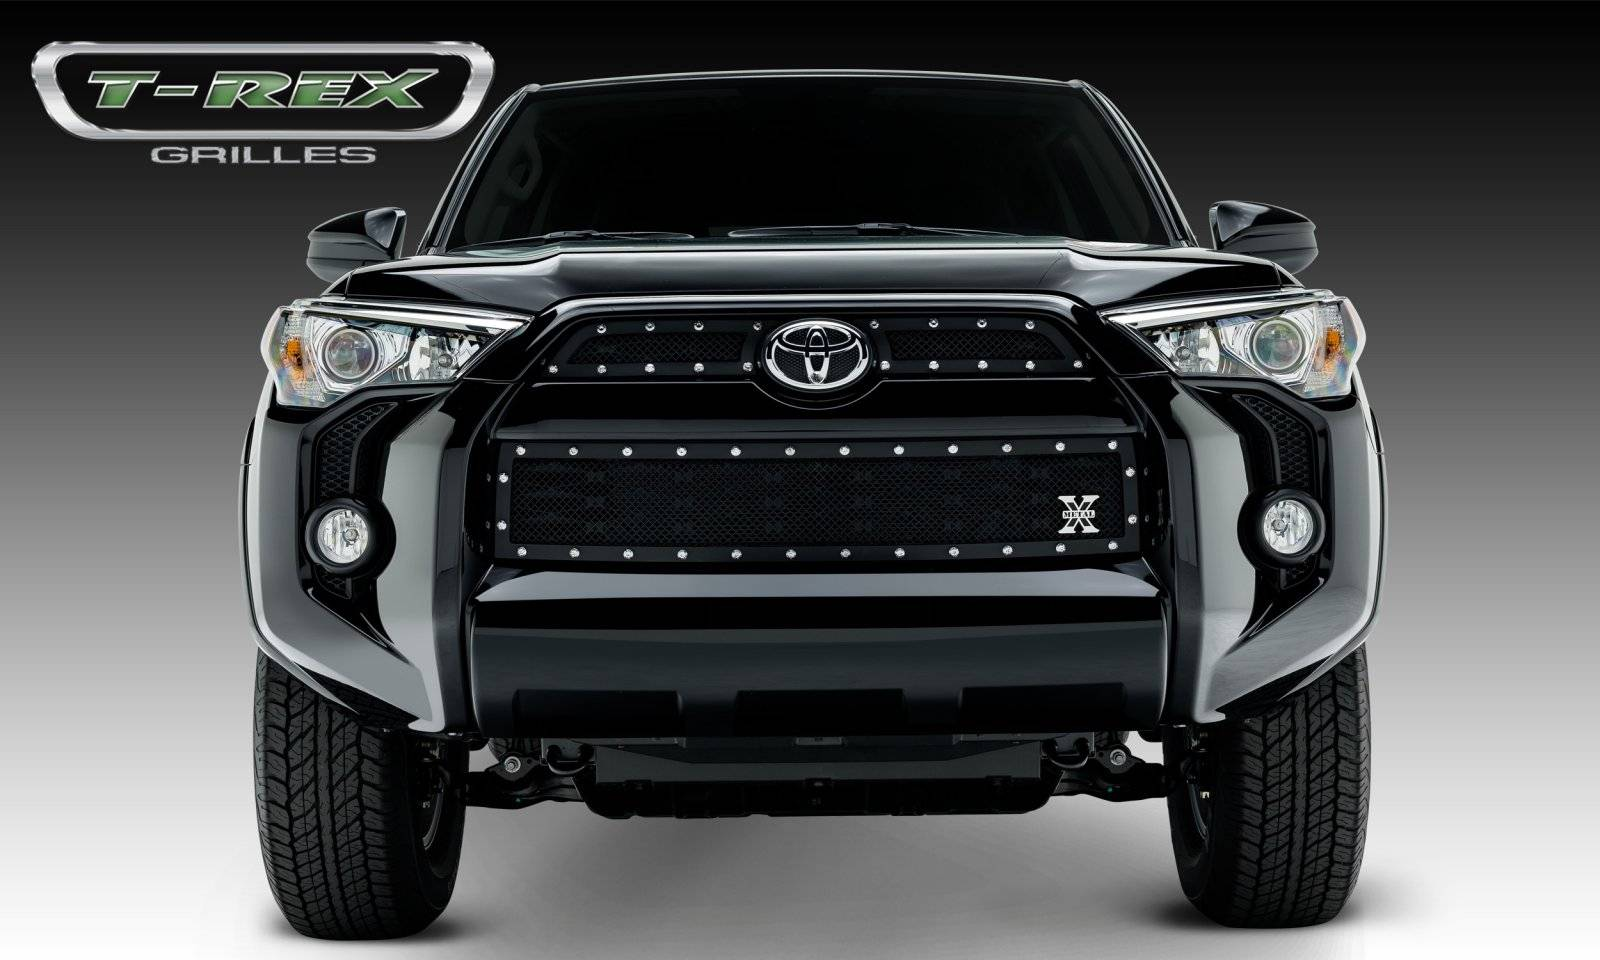 T-REX Toyota 4 Runner X-Metal, Formed Mesh Grille, Main & Bumper Kit, Overlay, 3 Pc's, Black Powdercoated Mild Steel - Pt # 6719491